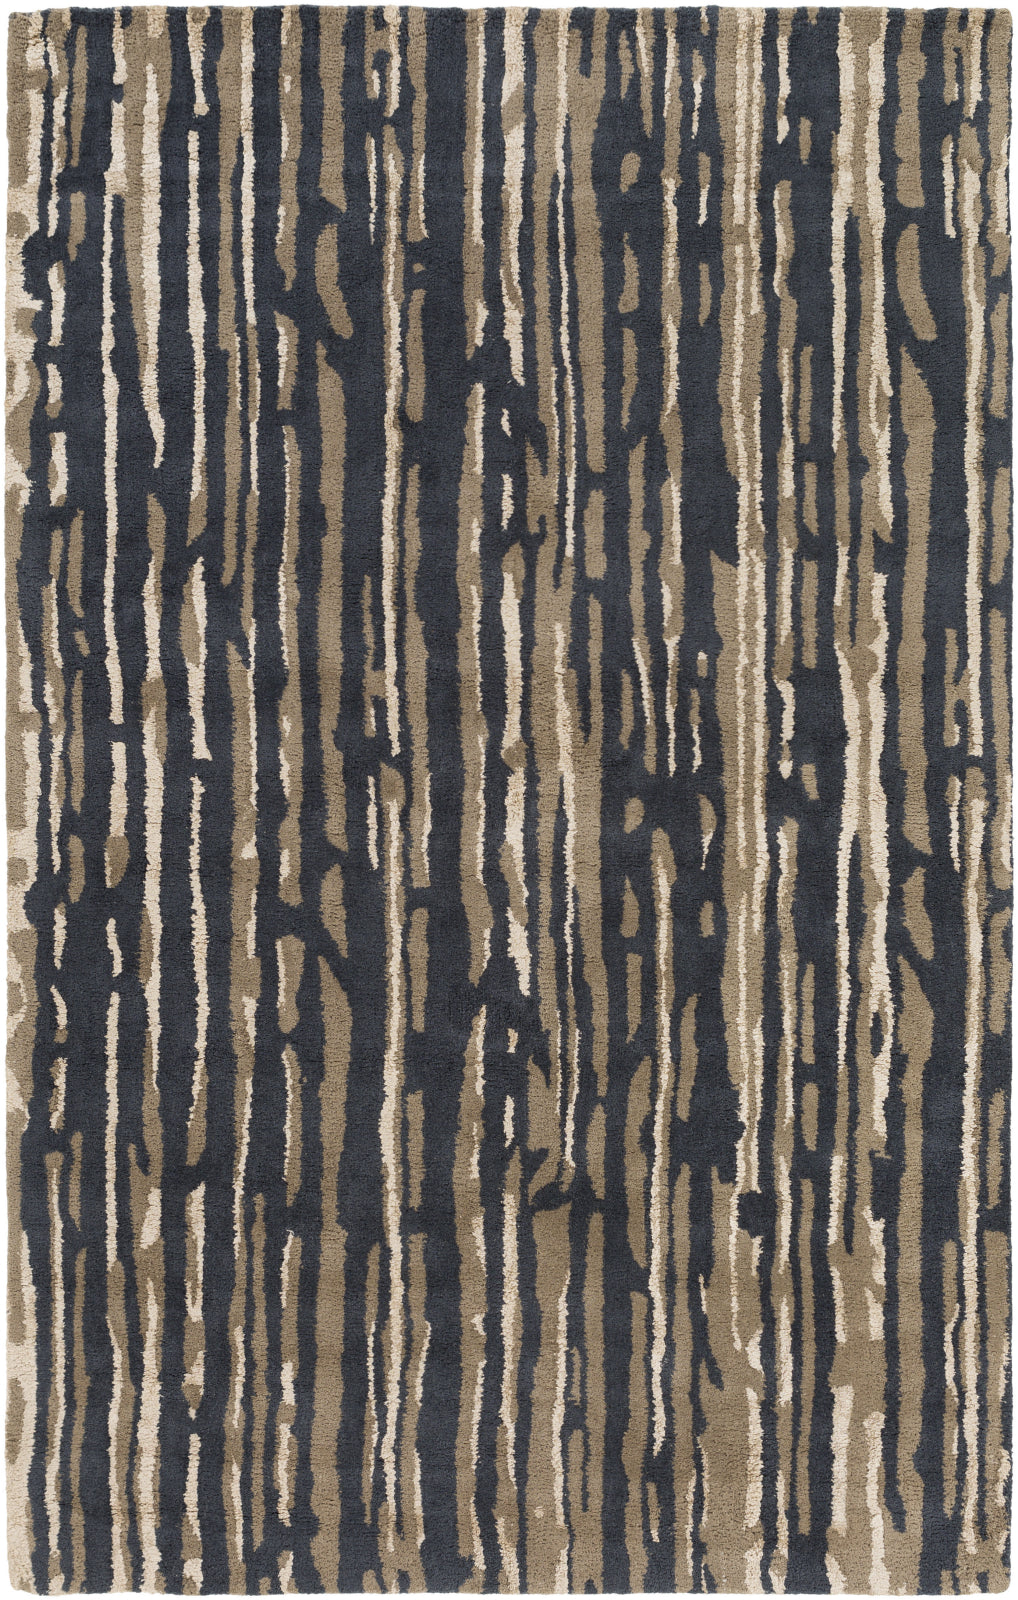 Surya Modern Classics CAN-2075 Area Rug by Candice Olson main image